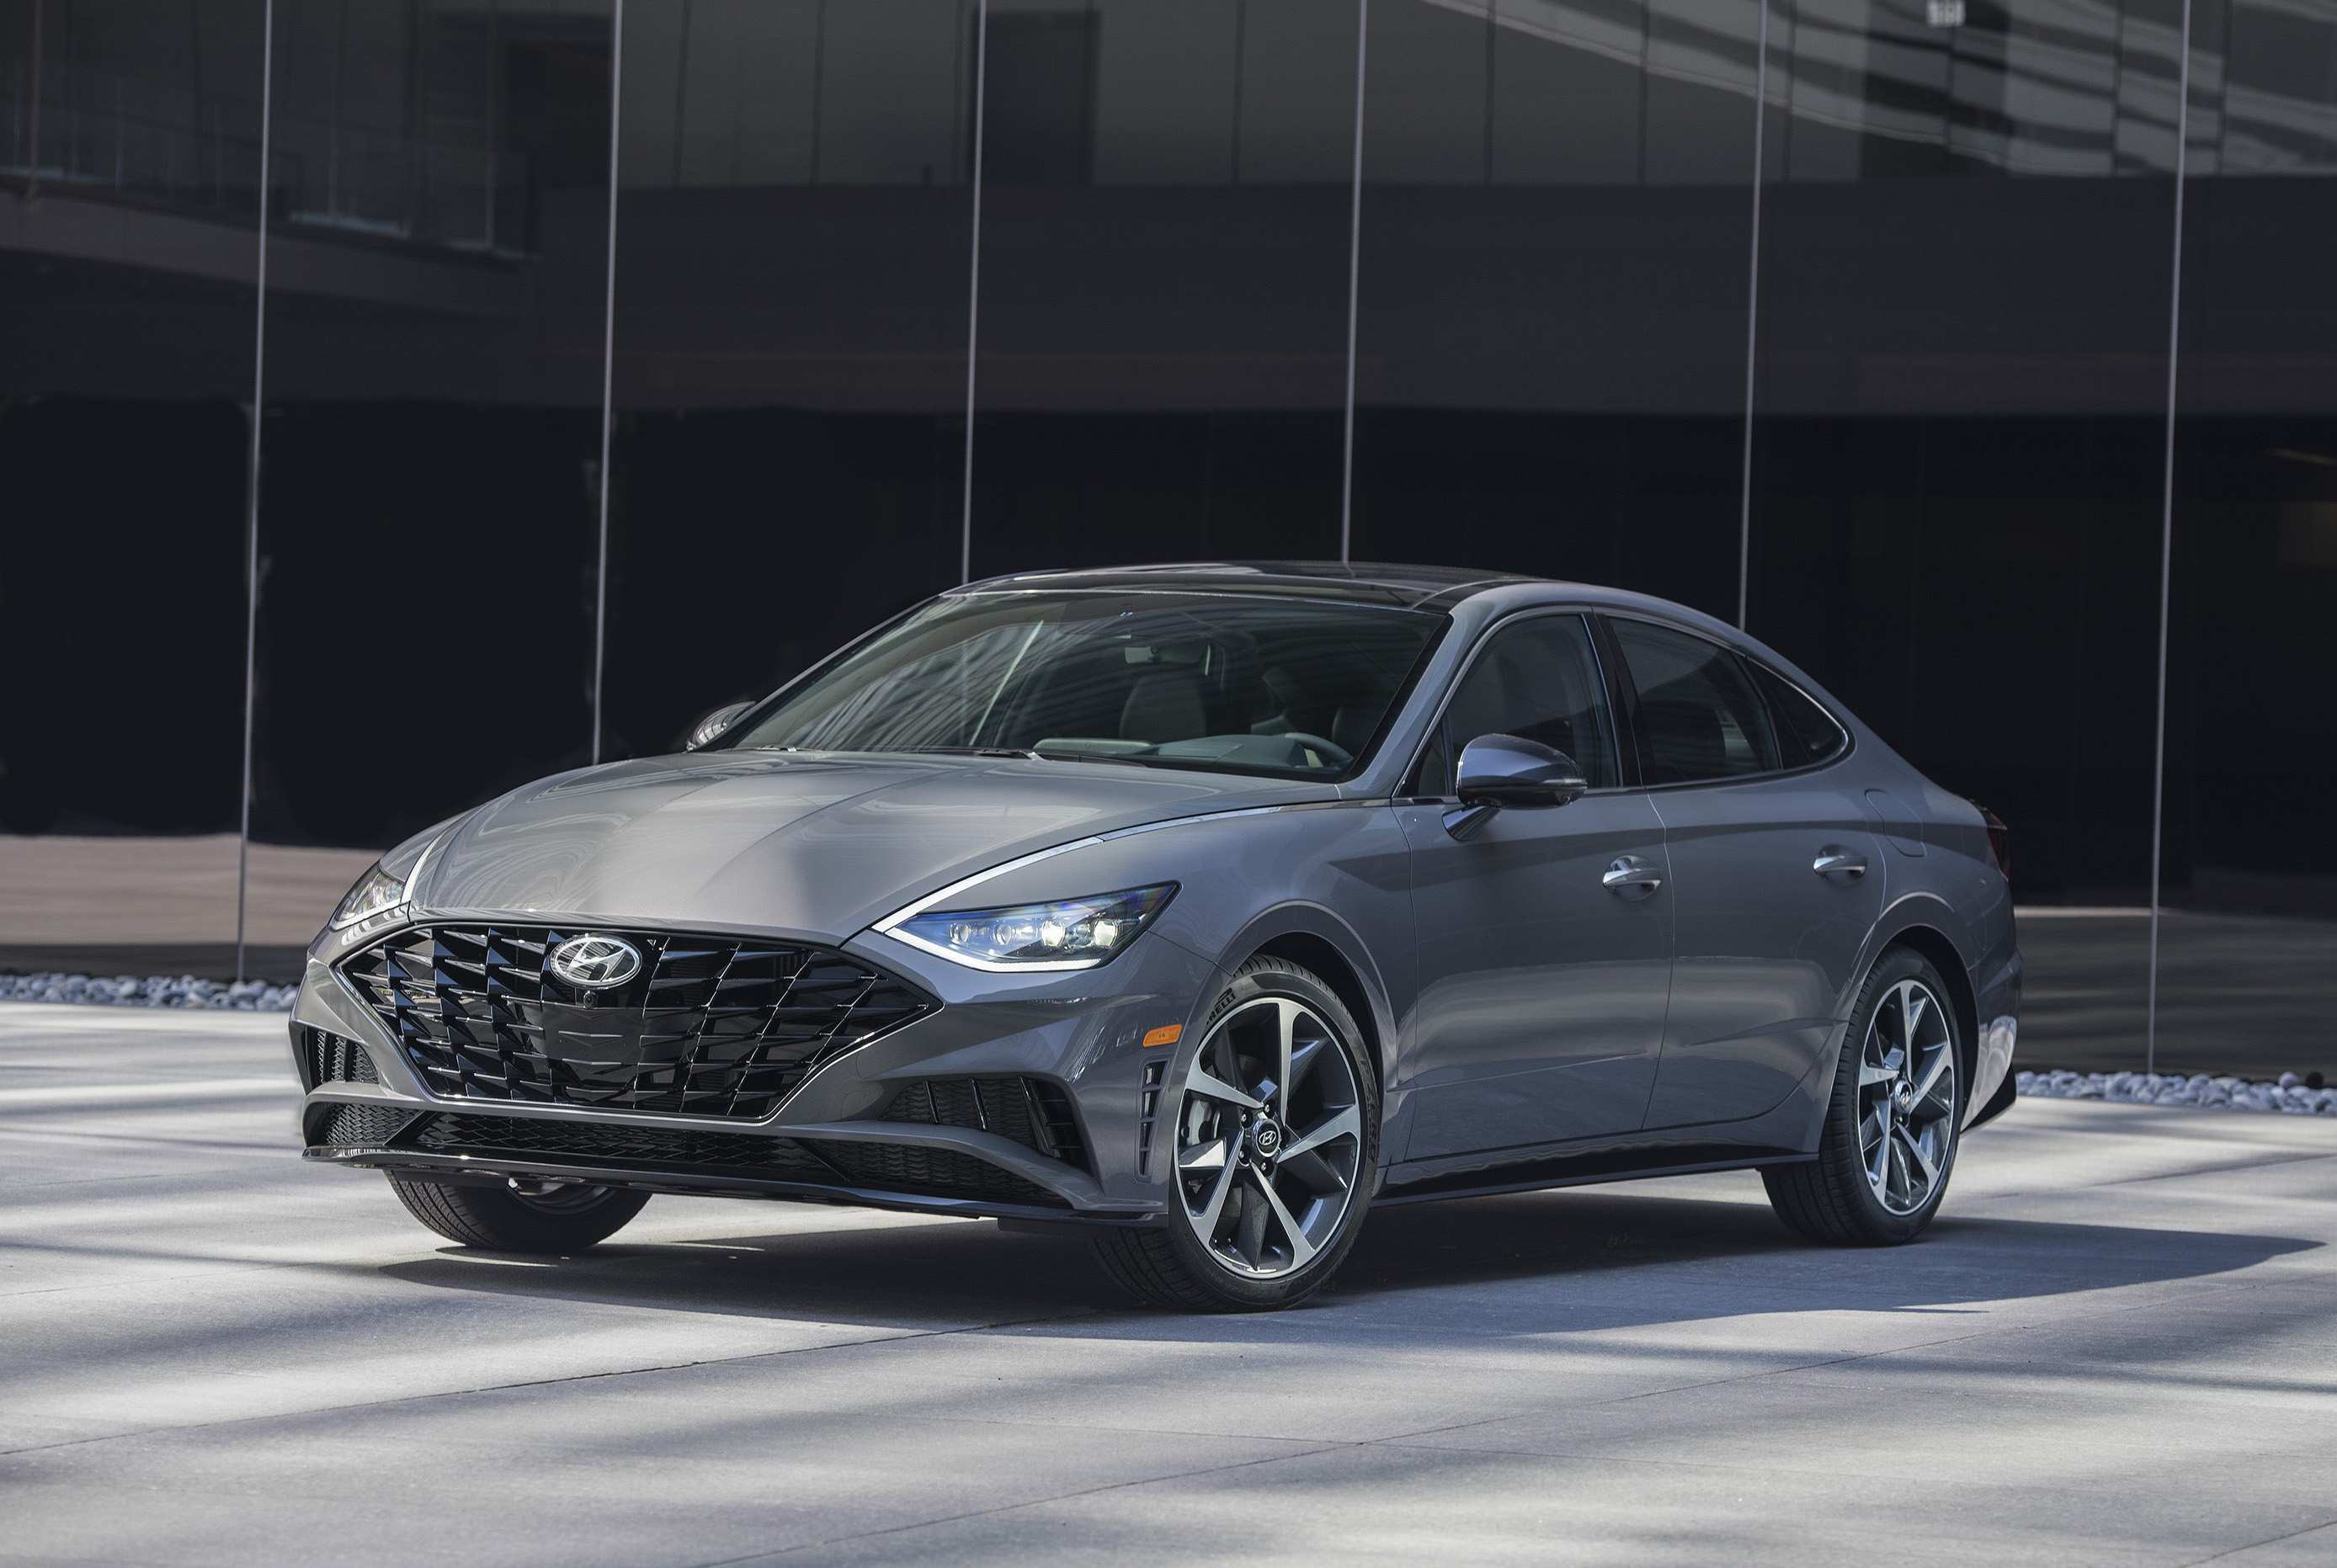 57 Gallery of 2020 Hyundai Sonata N Line Spesification for 2020 Hyundai Sonata N Line